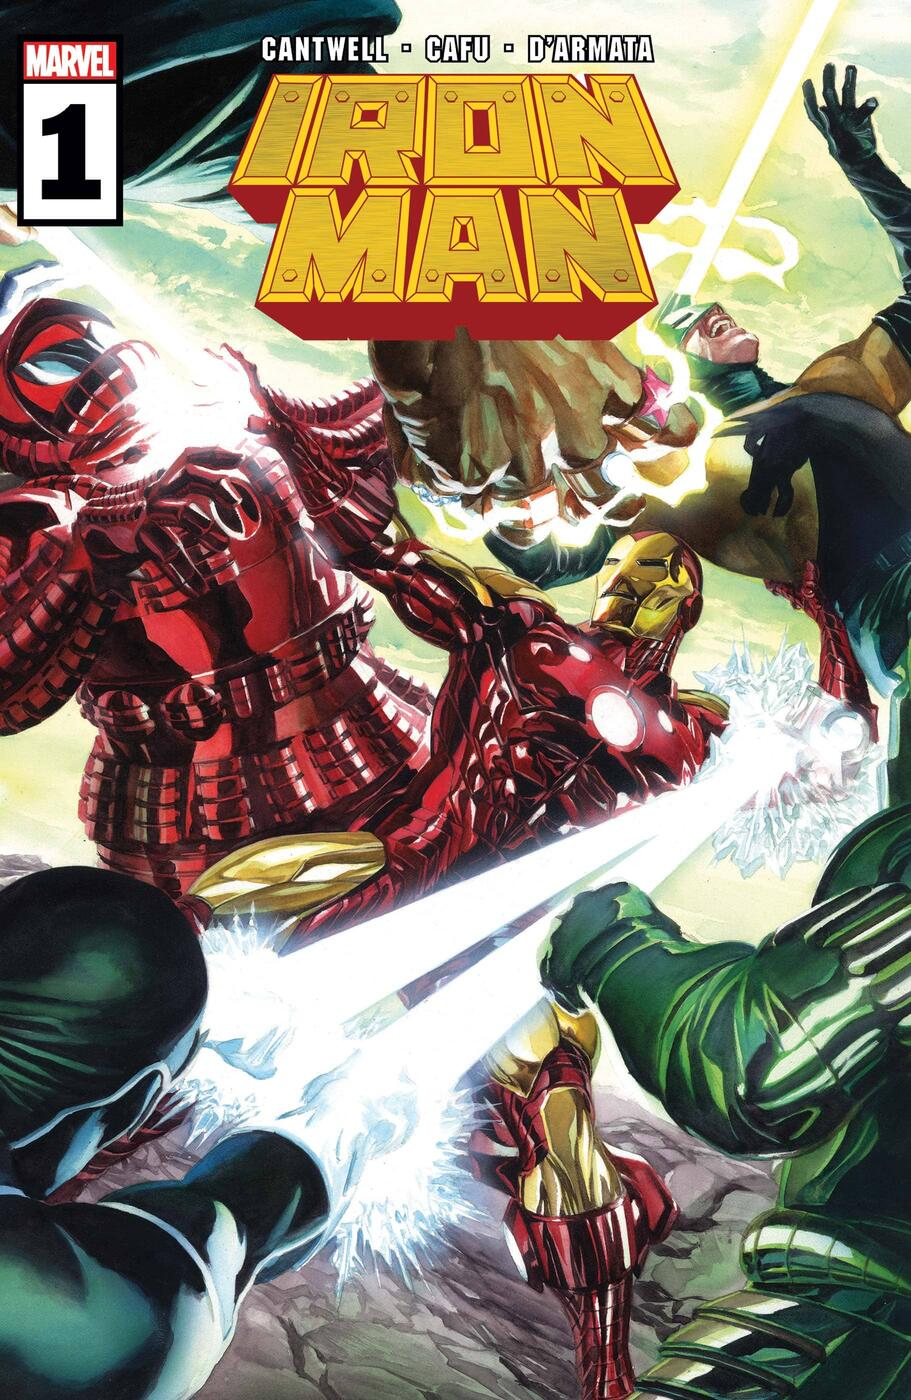 IRON MAN #1 cover by Alex Ross